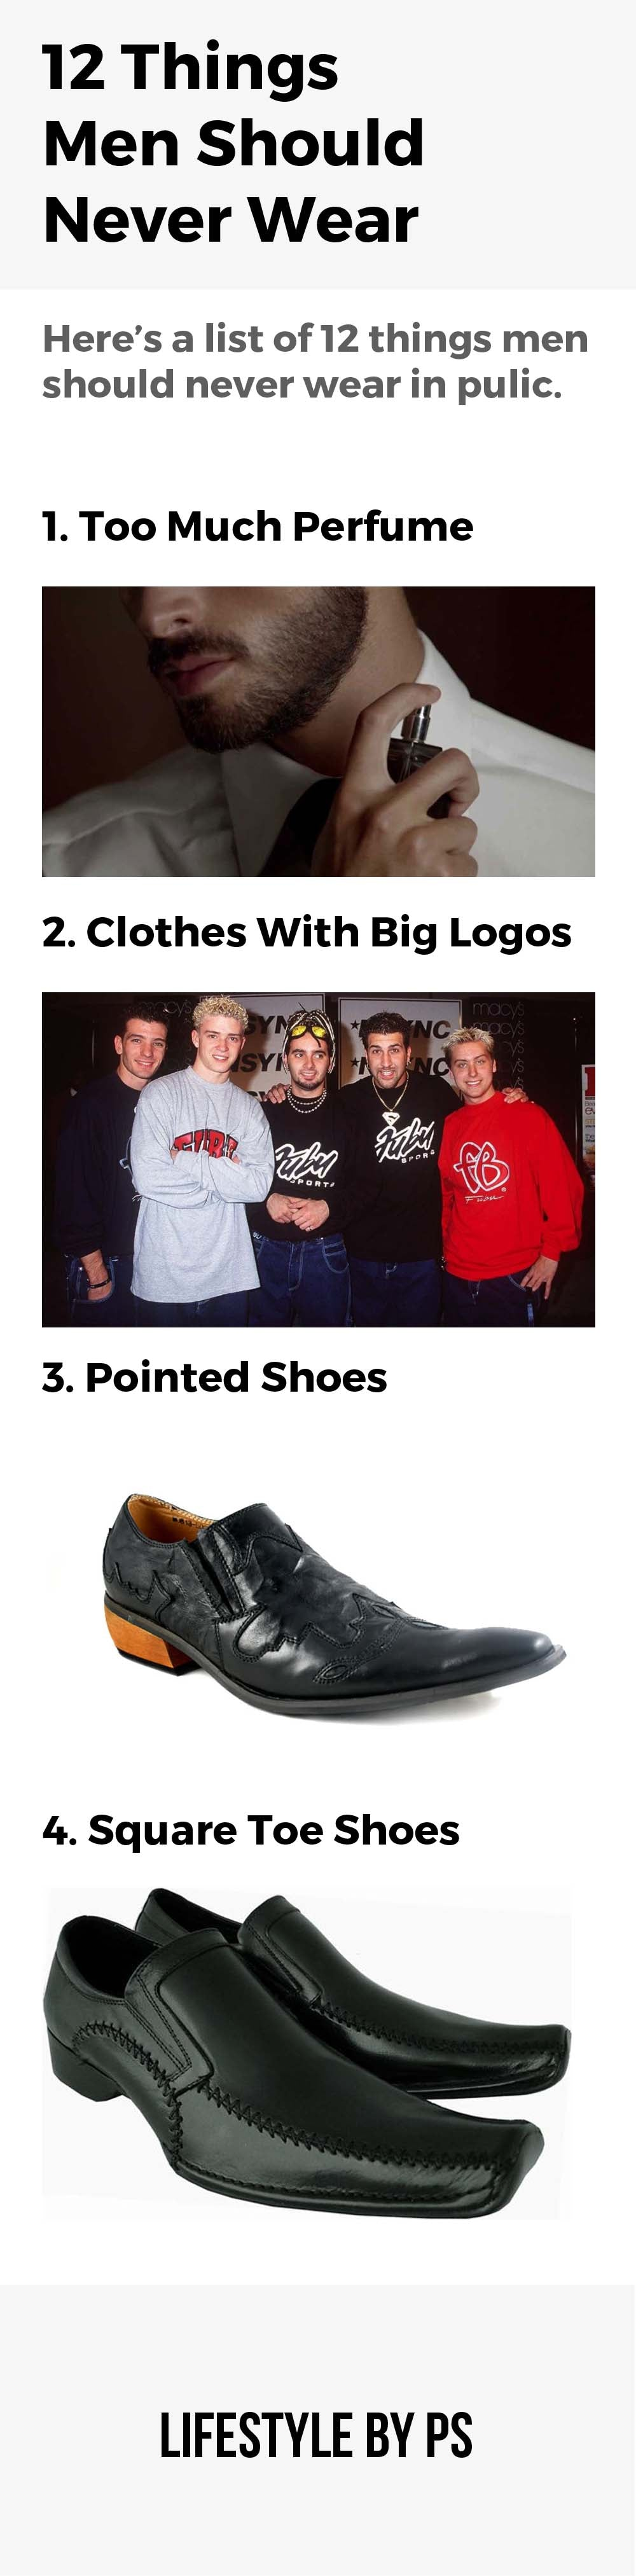 12 Things Men Should Never Wear In Public Fashion Mistakes Men Make Lifestyle By Ps